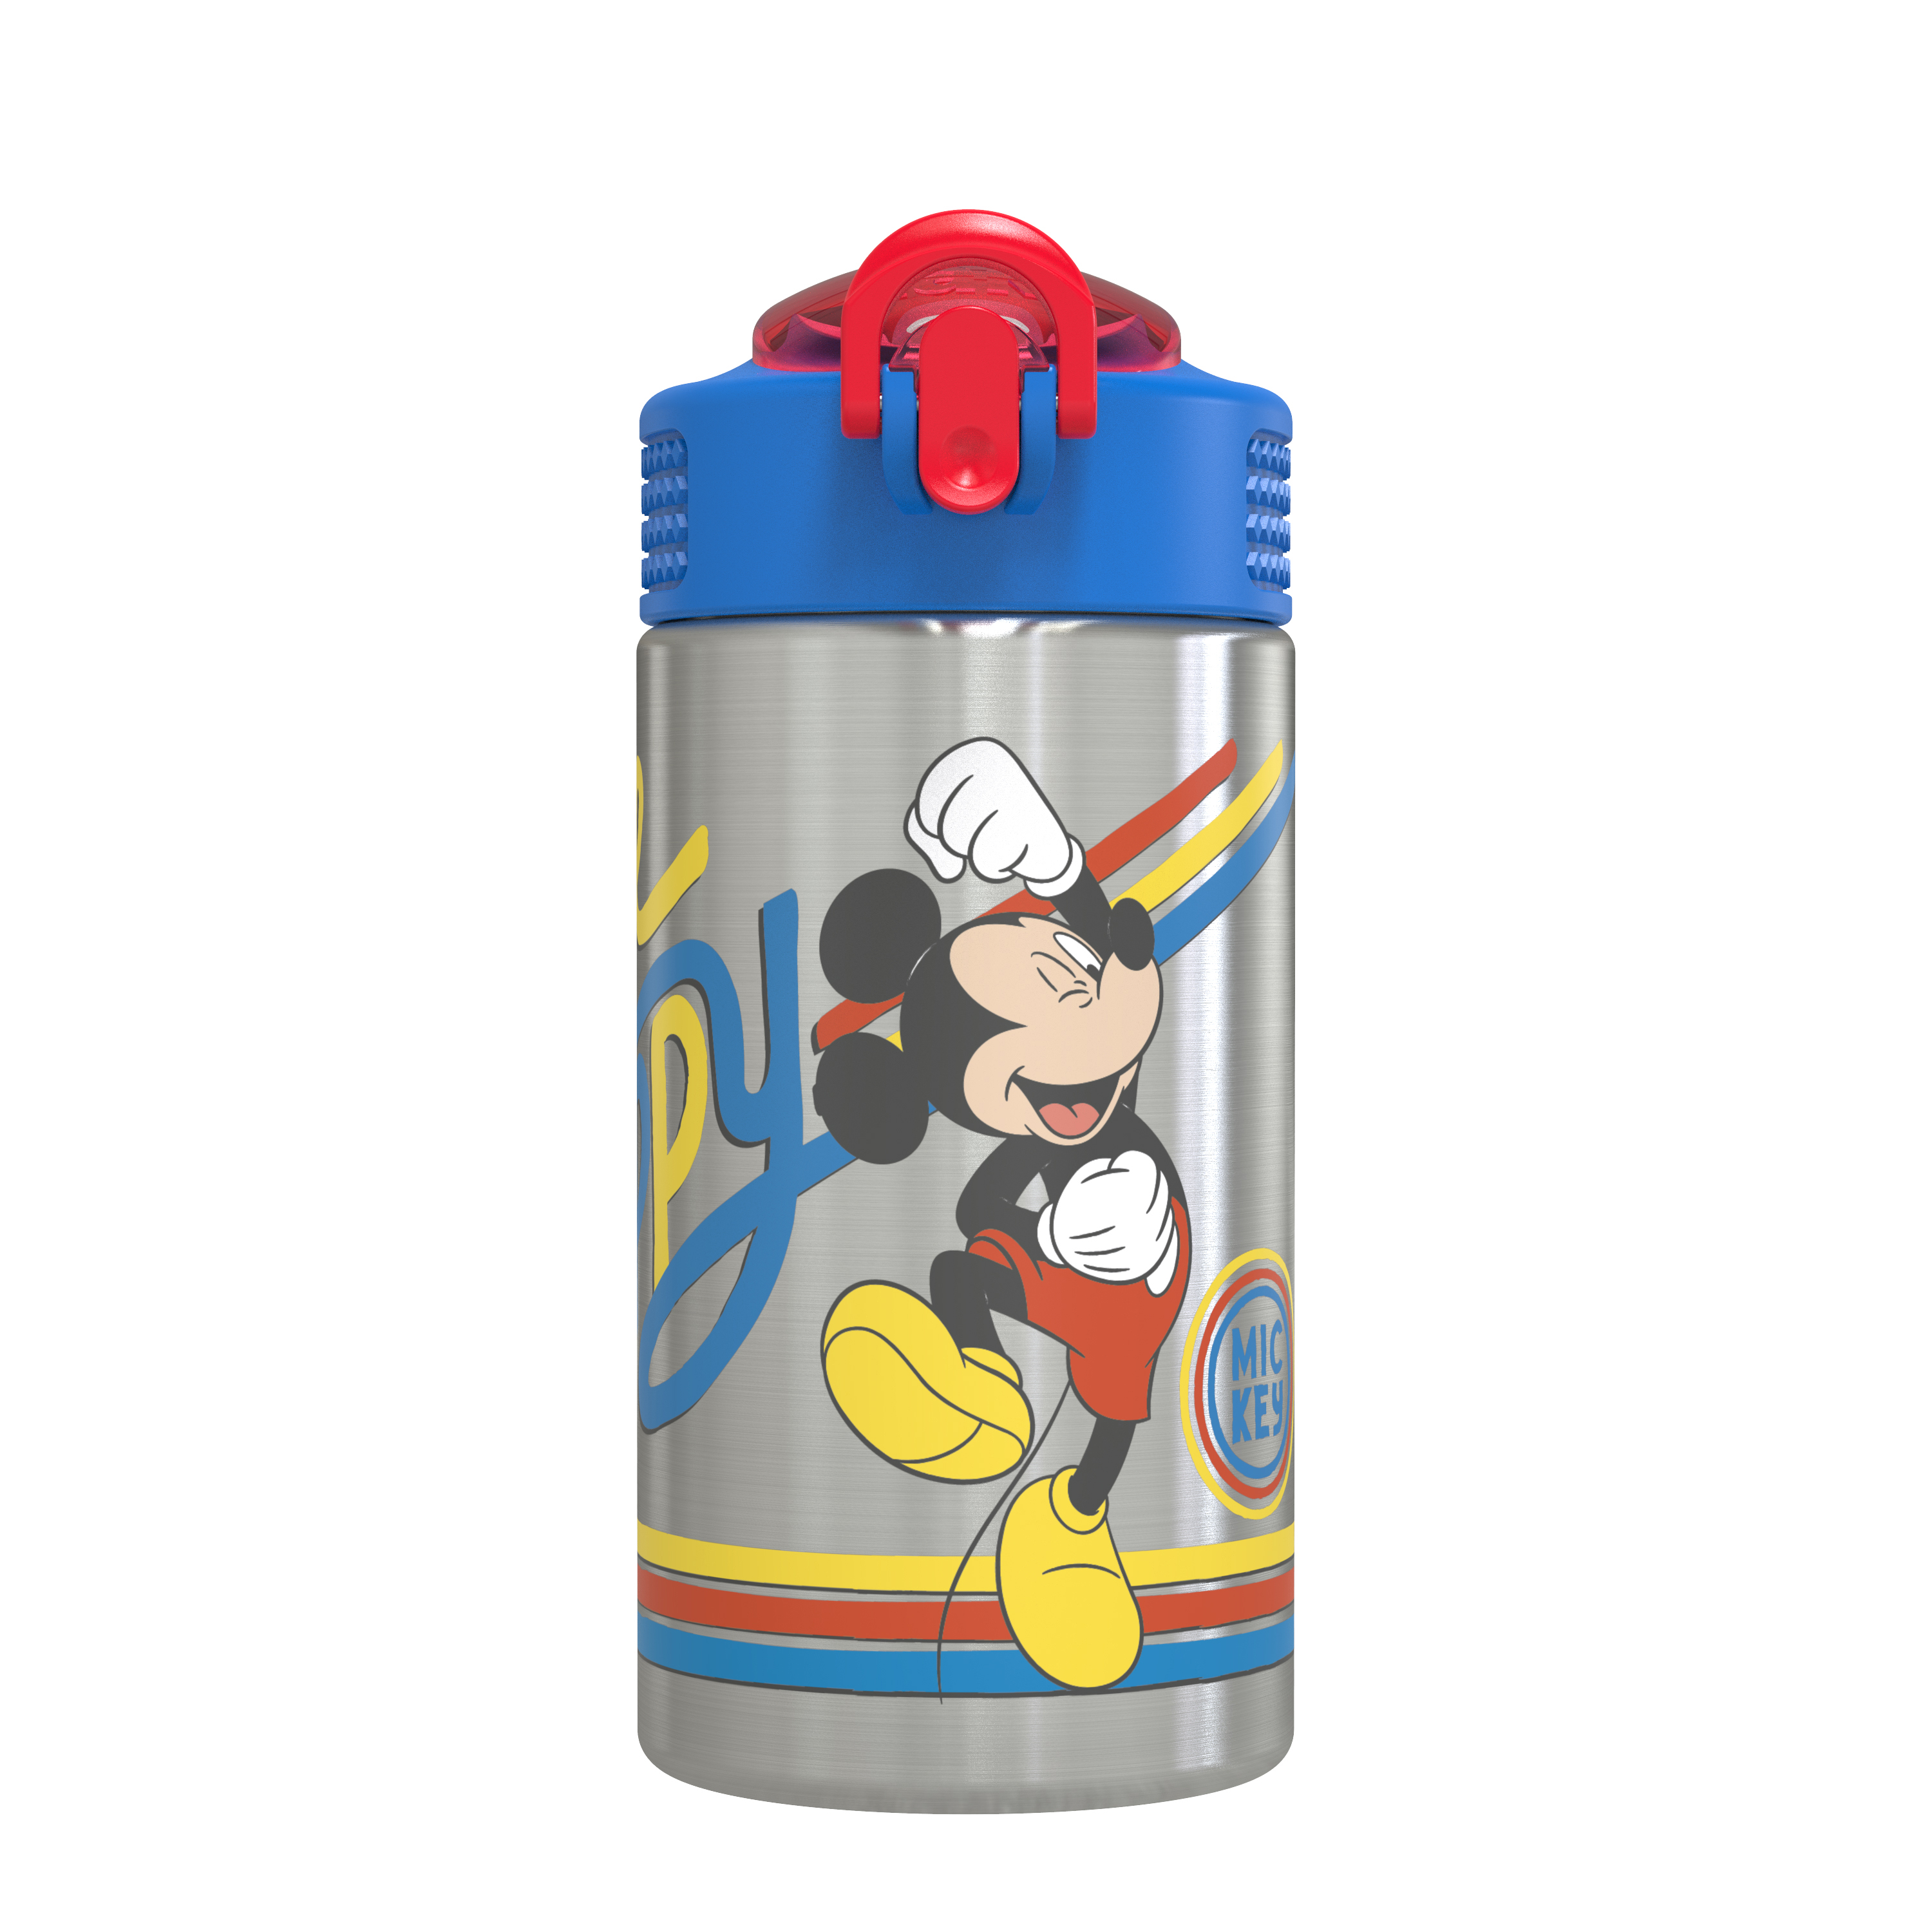 Disney 15.5 ounce Stainless Steel Water Bottle with Built-in Carrying Loop, Mickey Mouse slideshow image 1